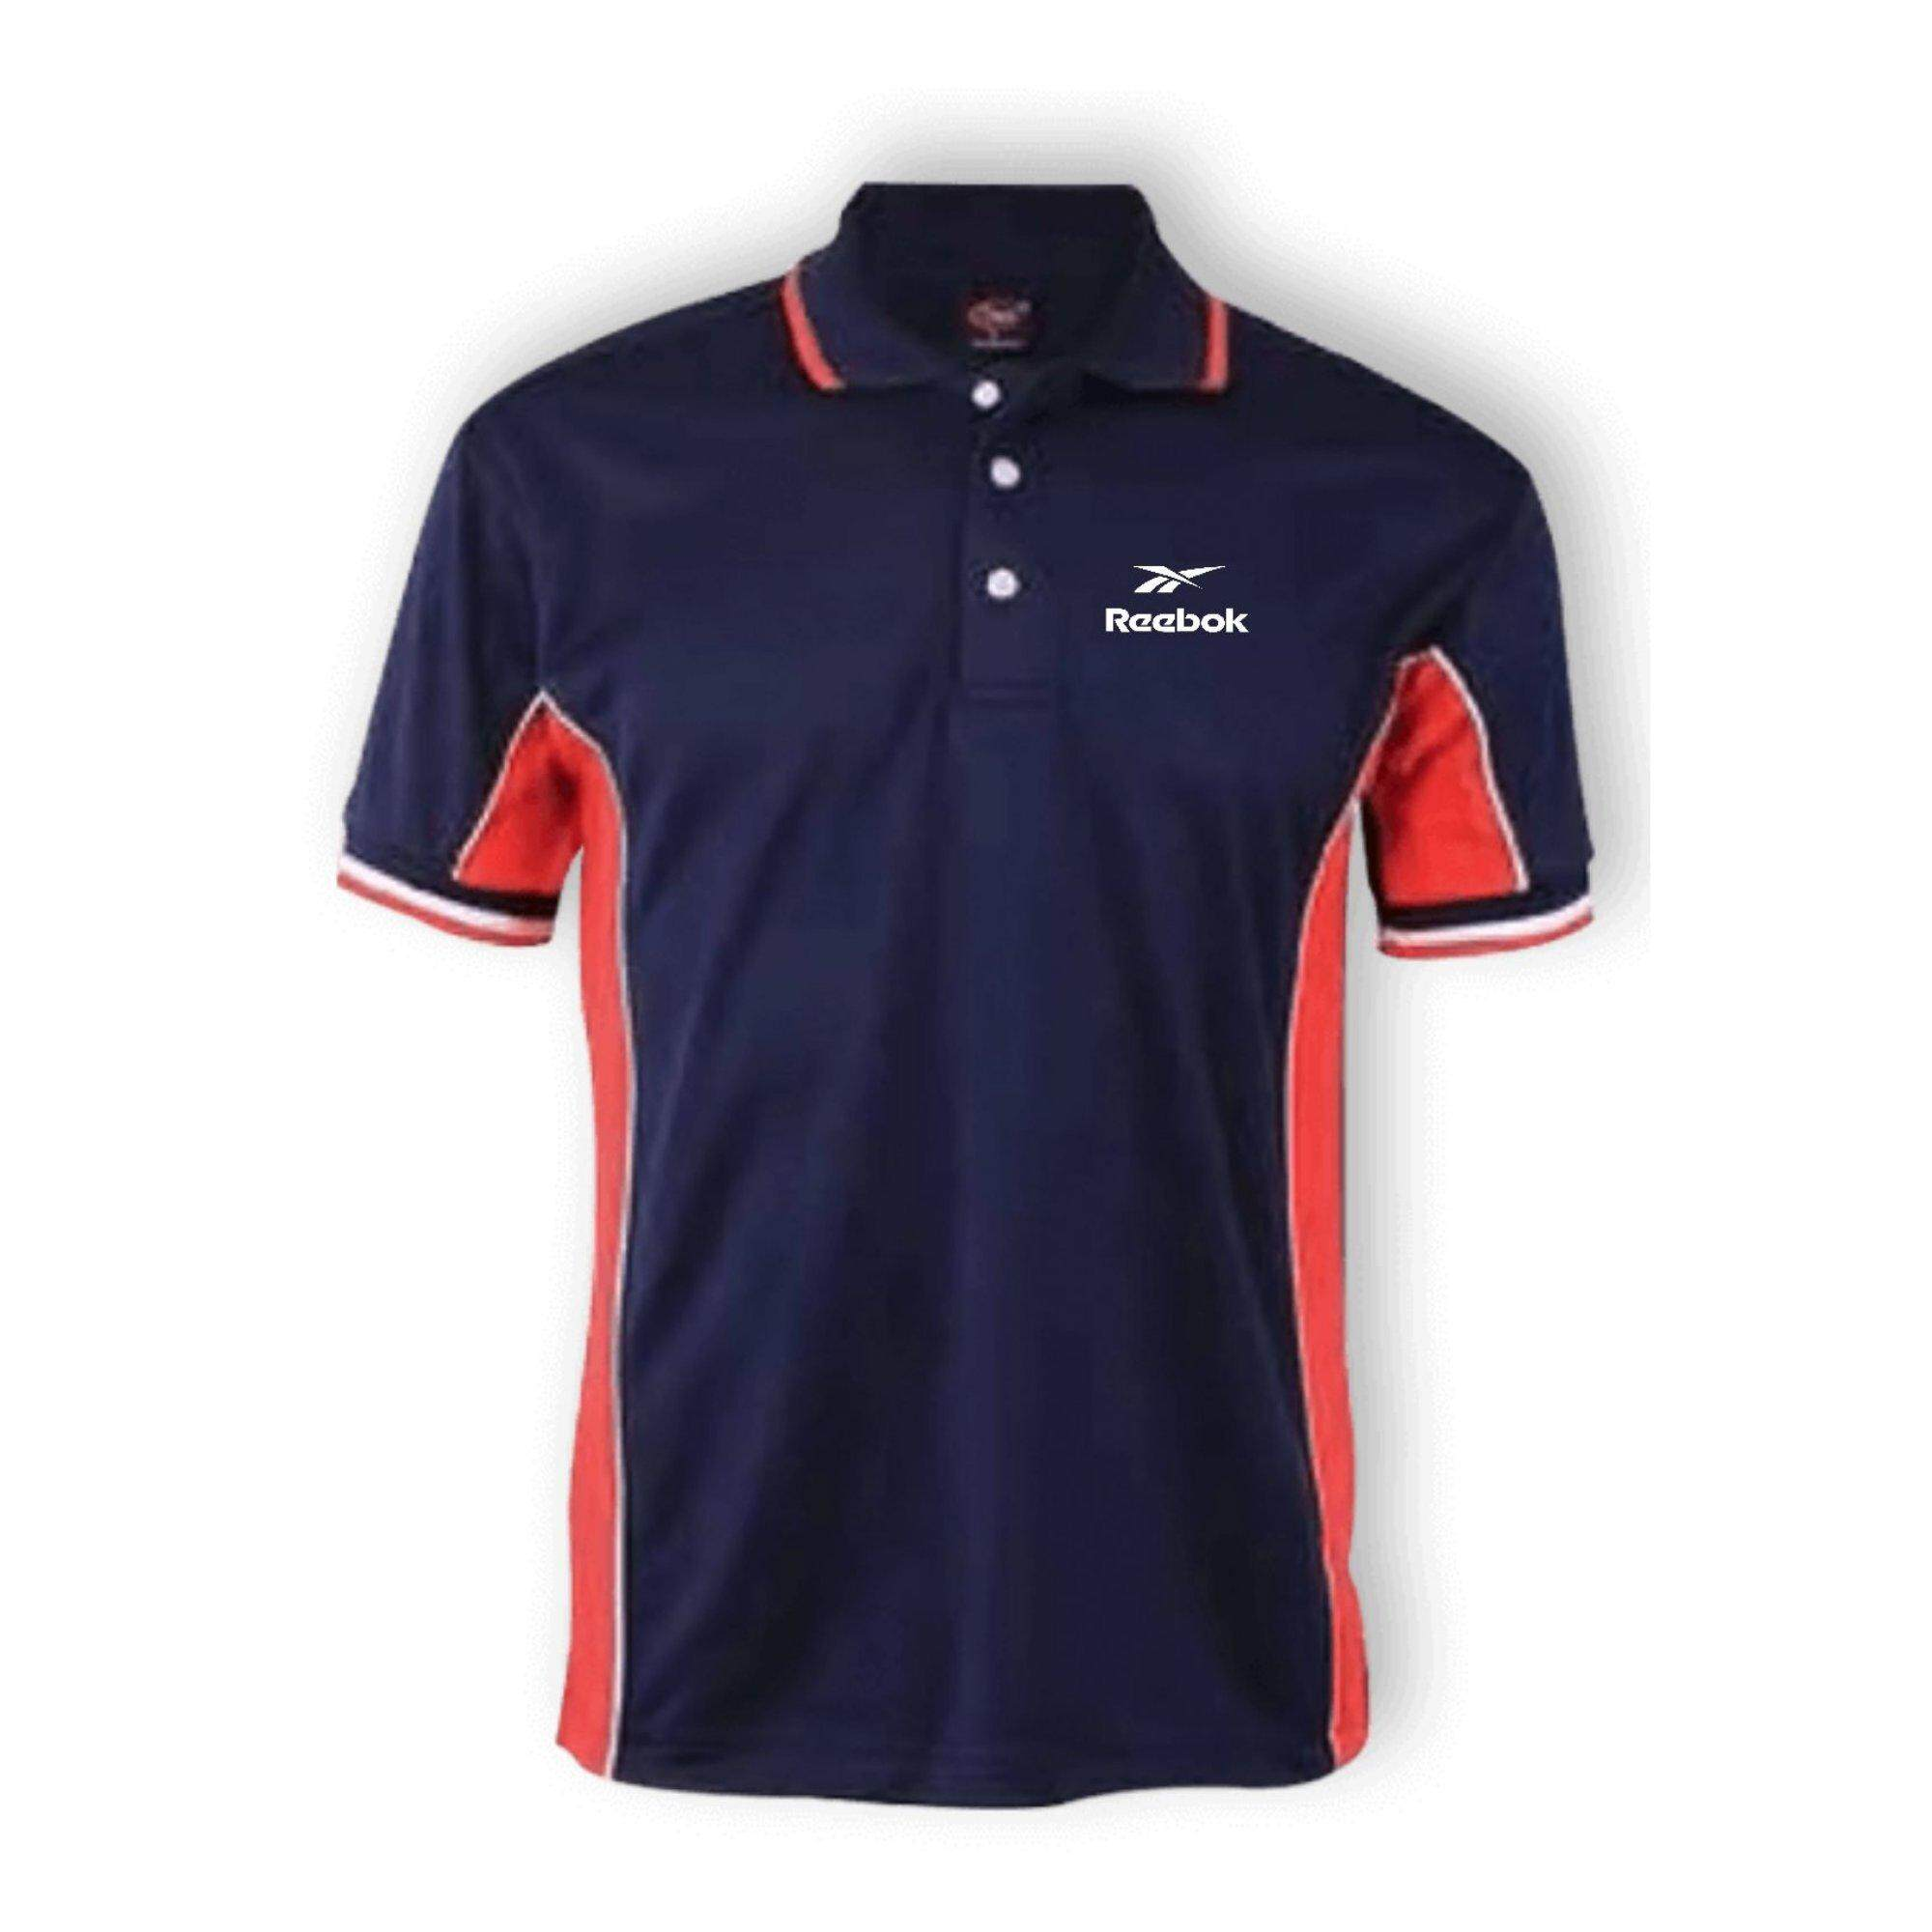 a4bcf76f7 Men's T-Shirts & Tops - Buy Men's T-Shirts & Tops at Best Price in ...